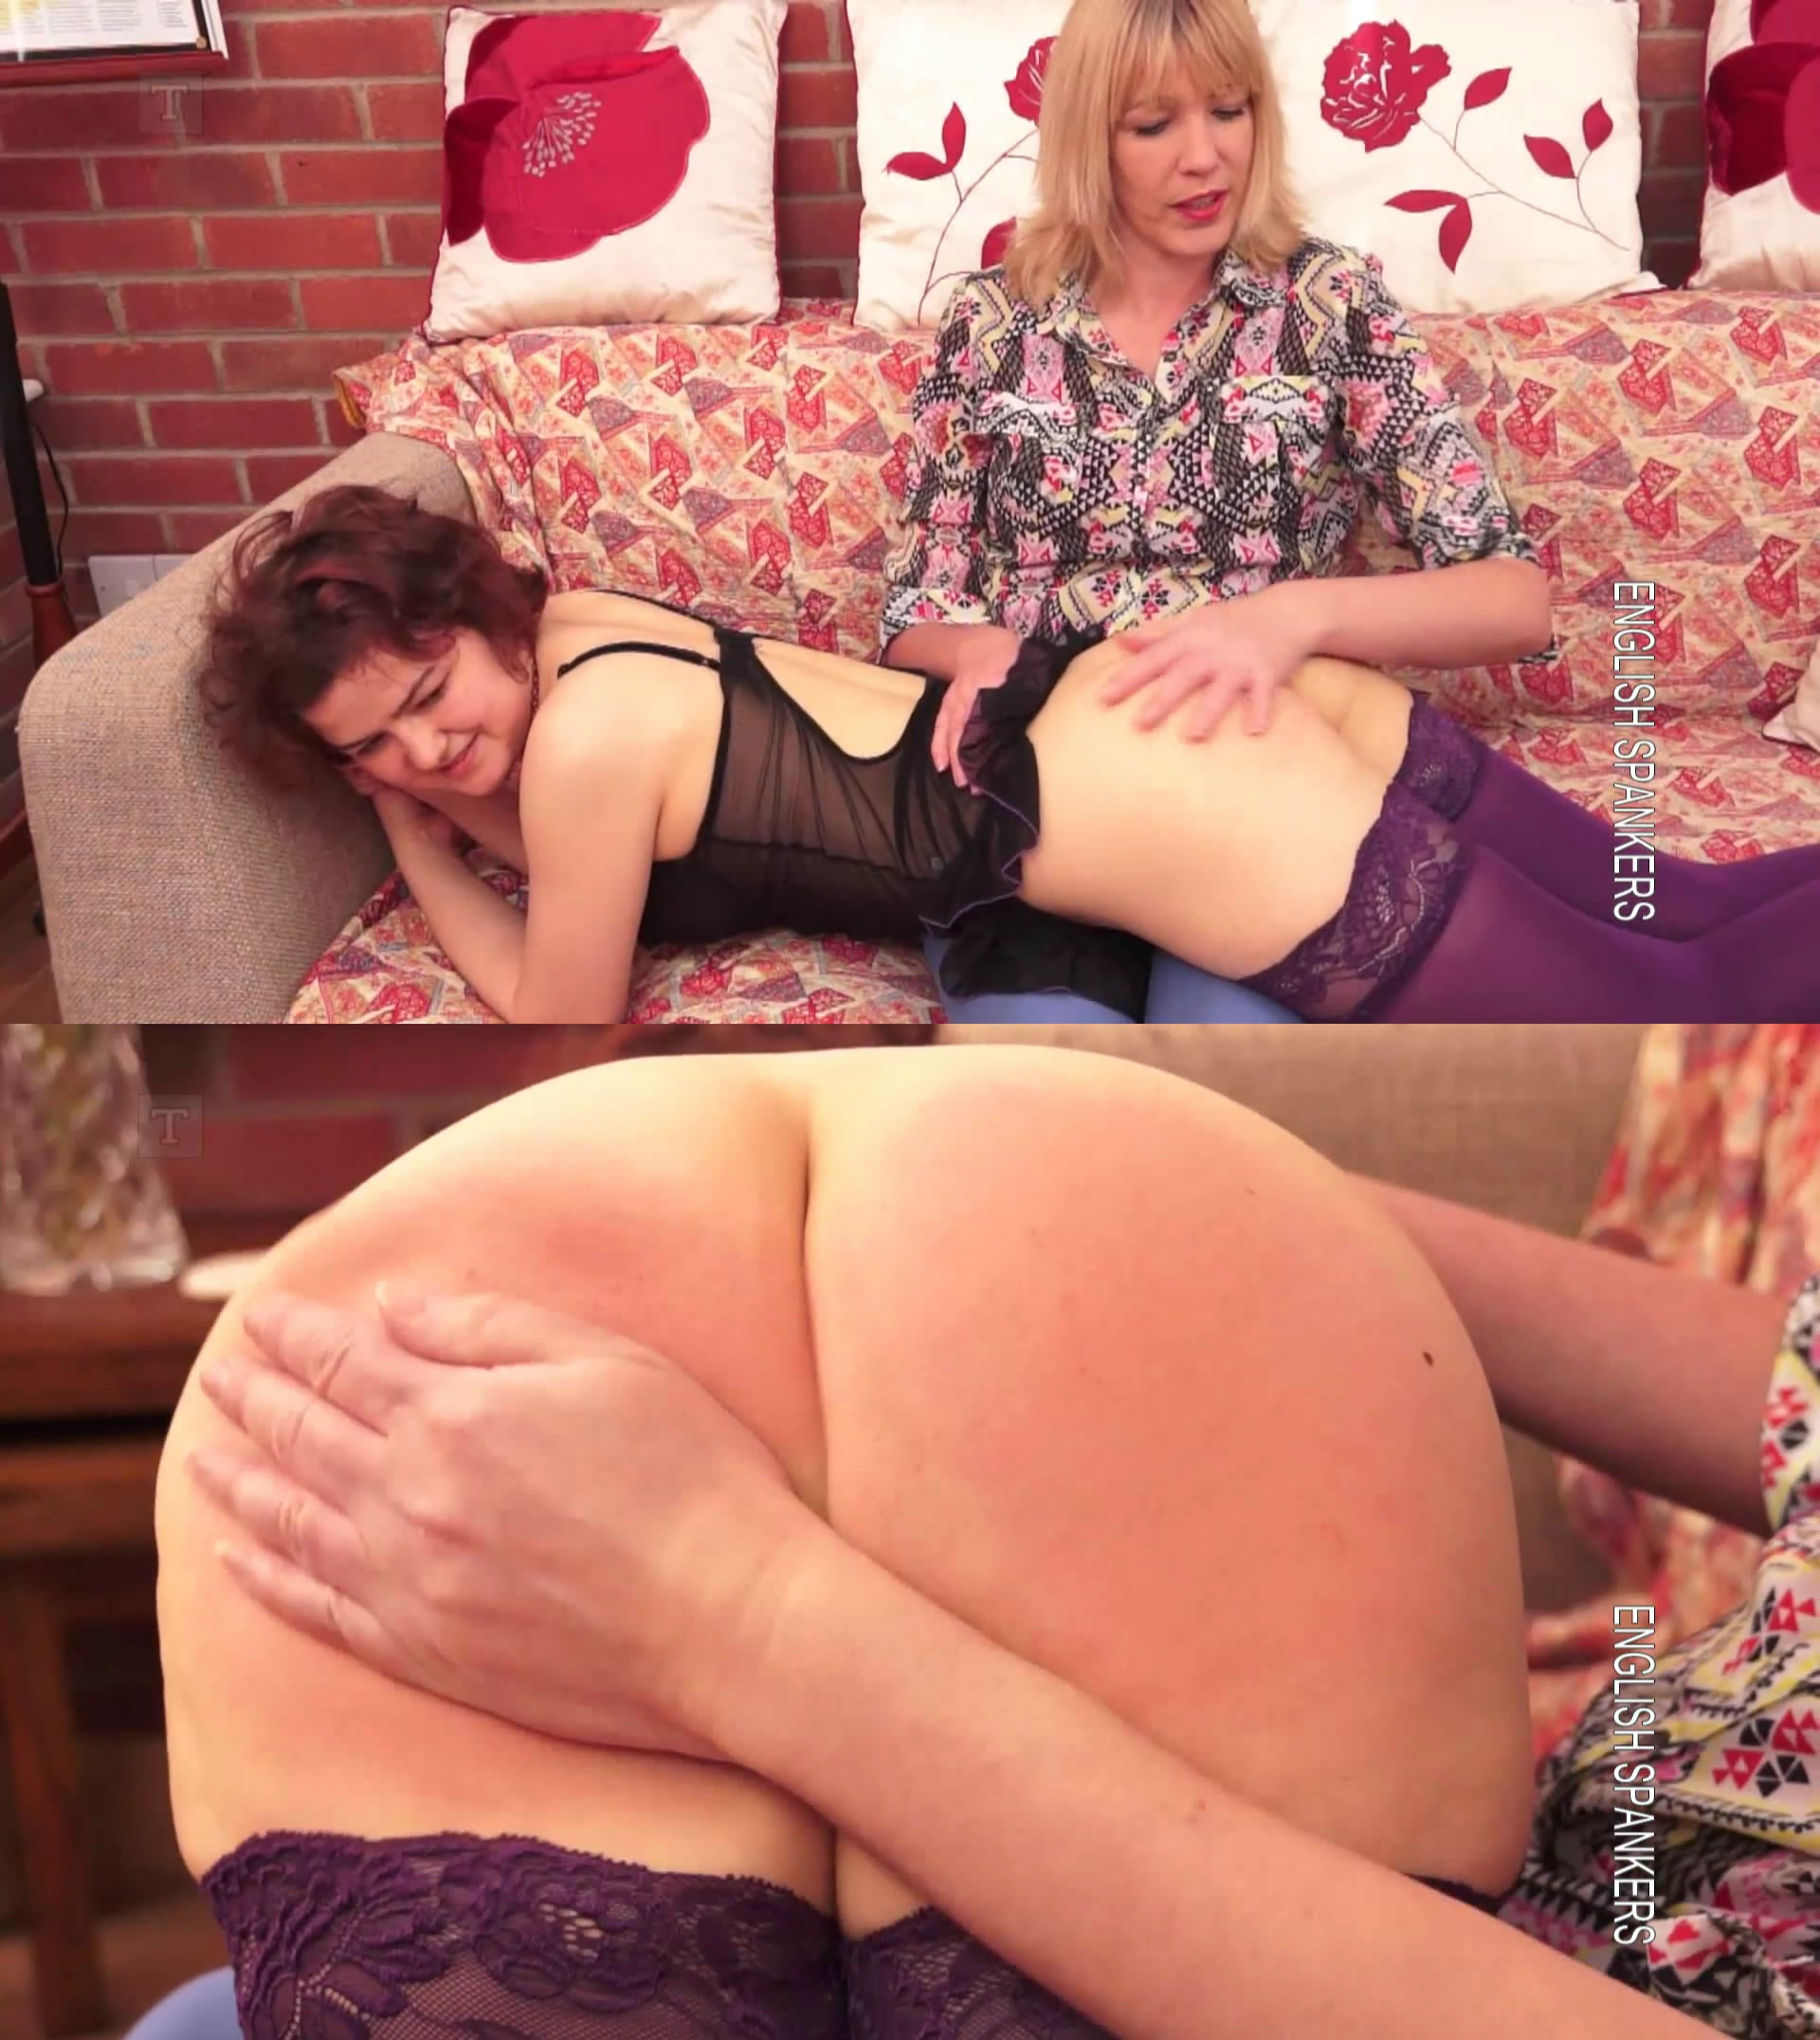 English Spankers – MP4/Full HD –spr-1439 Bemby interview and spanking